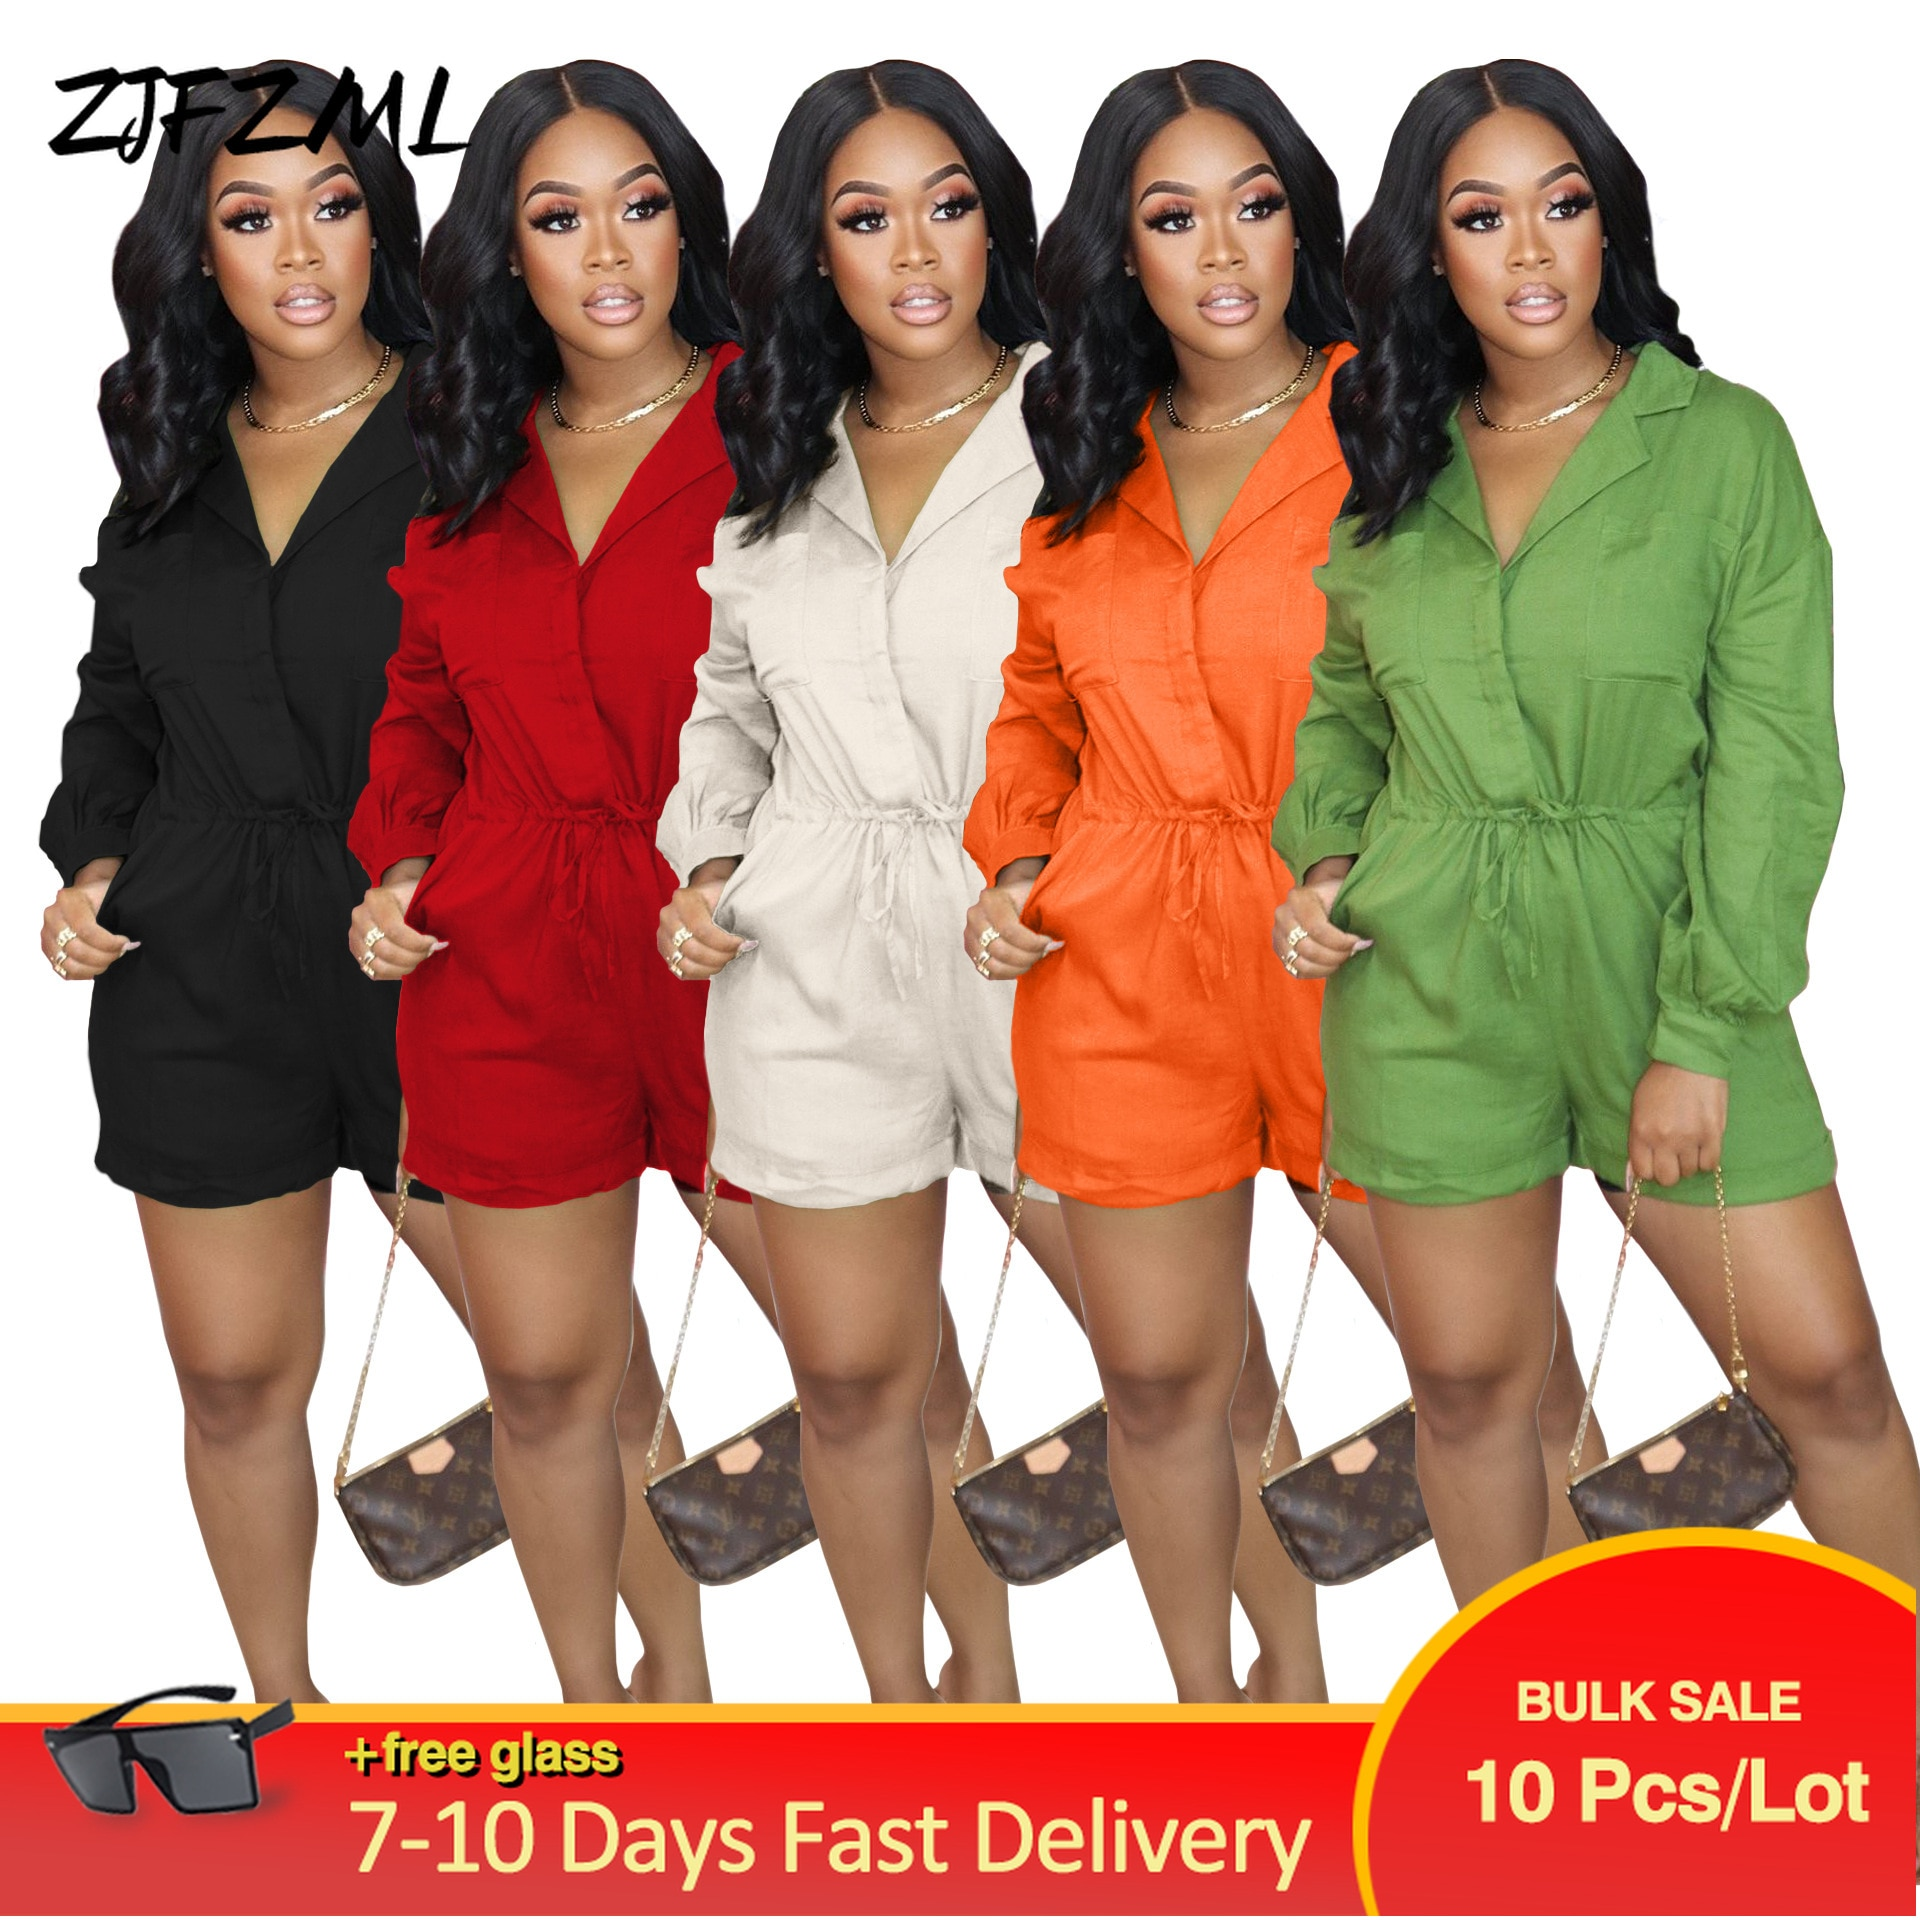 Bulk Items Wholesale Lots Women Clothing Autumn Jumpsuit Solid Long Sleeve Elastic Waist Casual Romper One Piece Short Overall